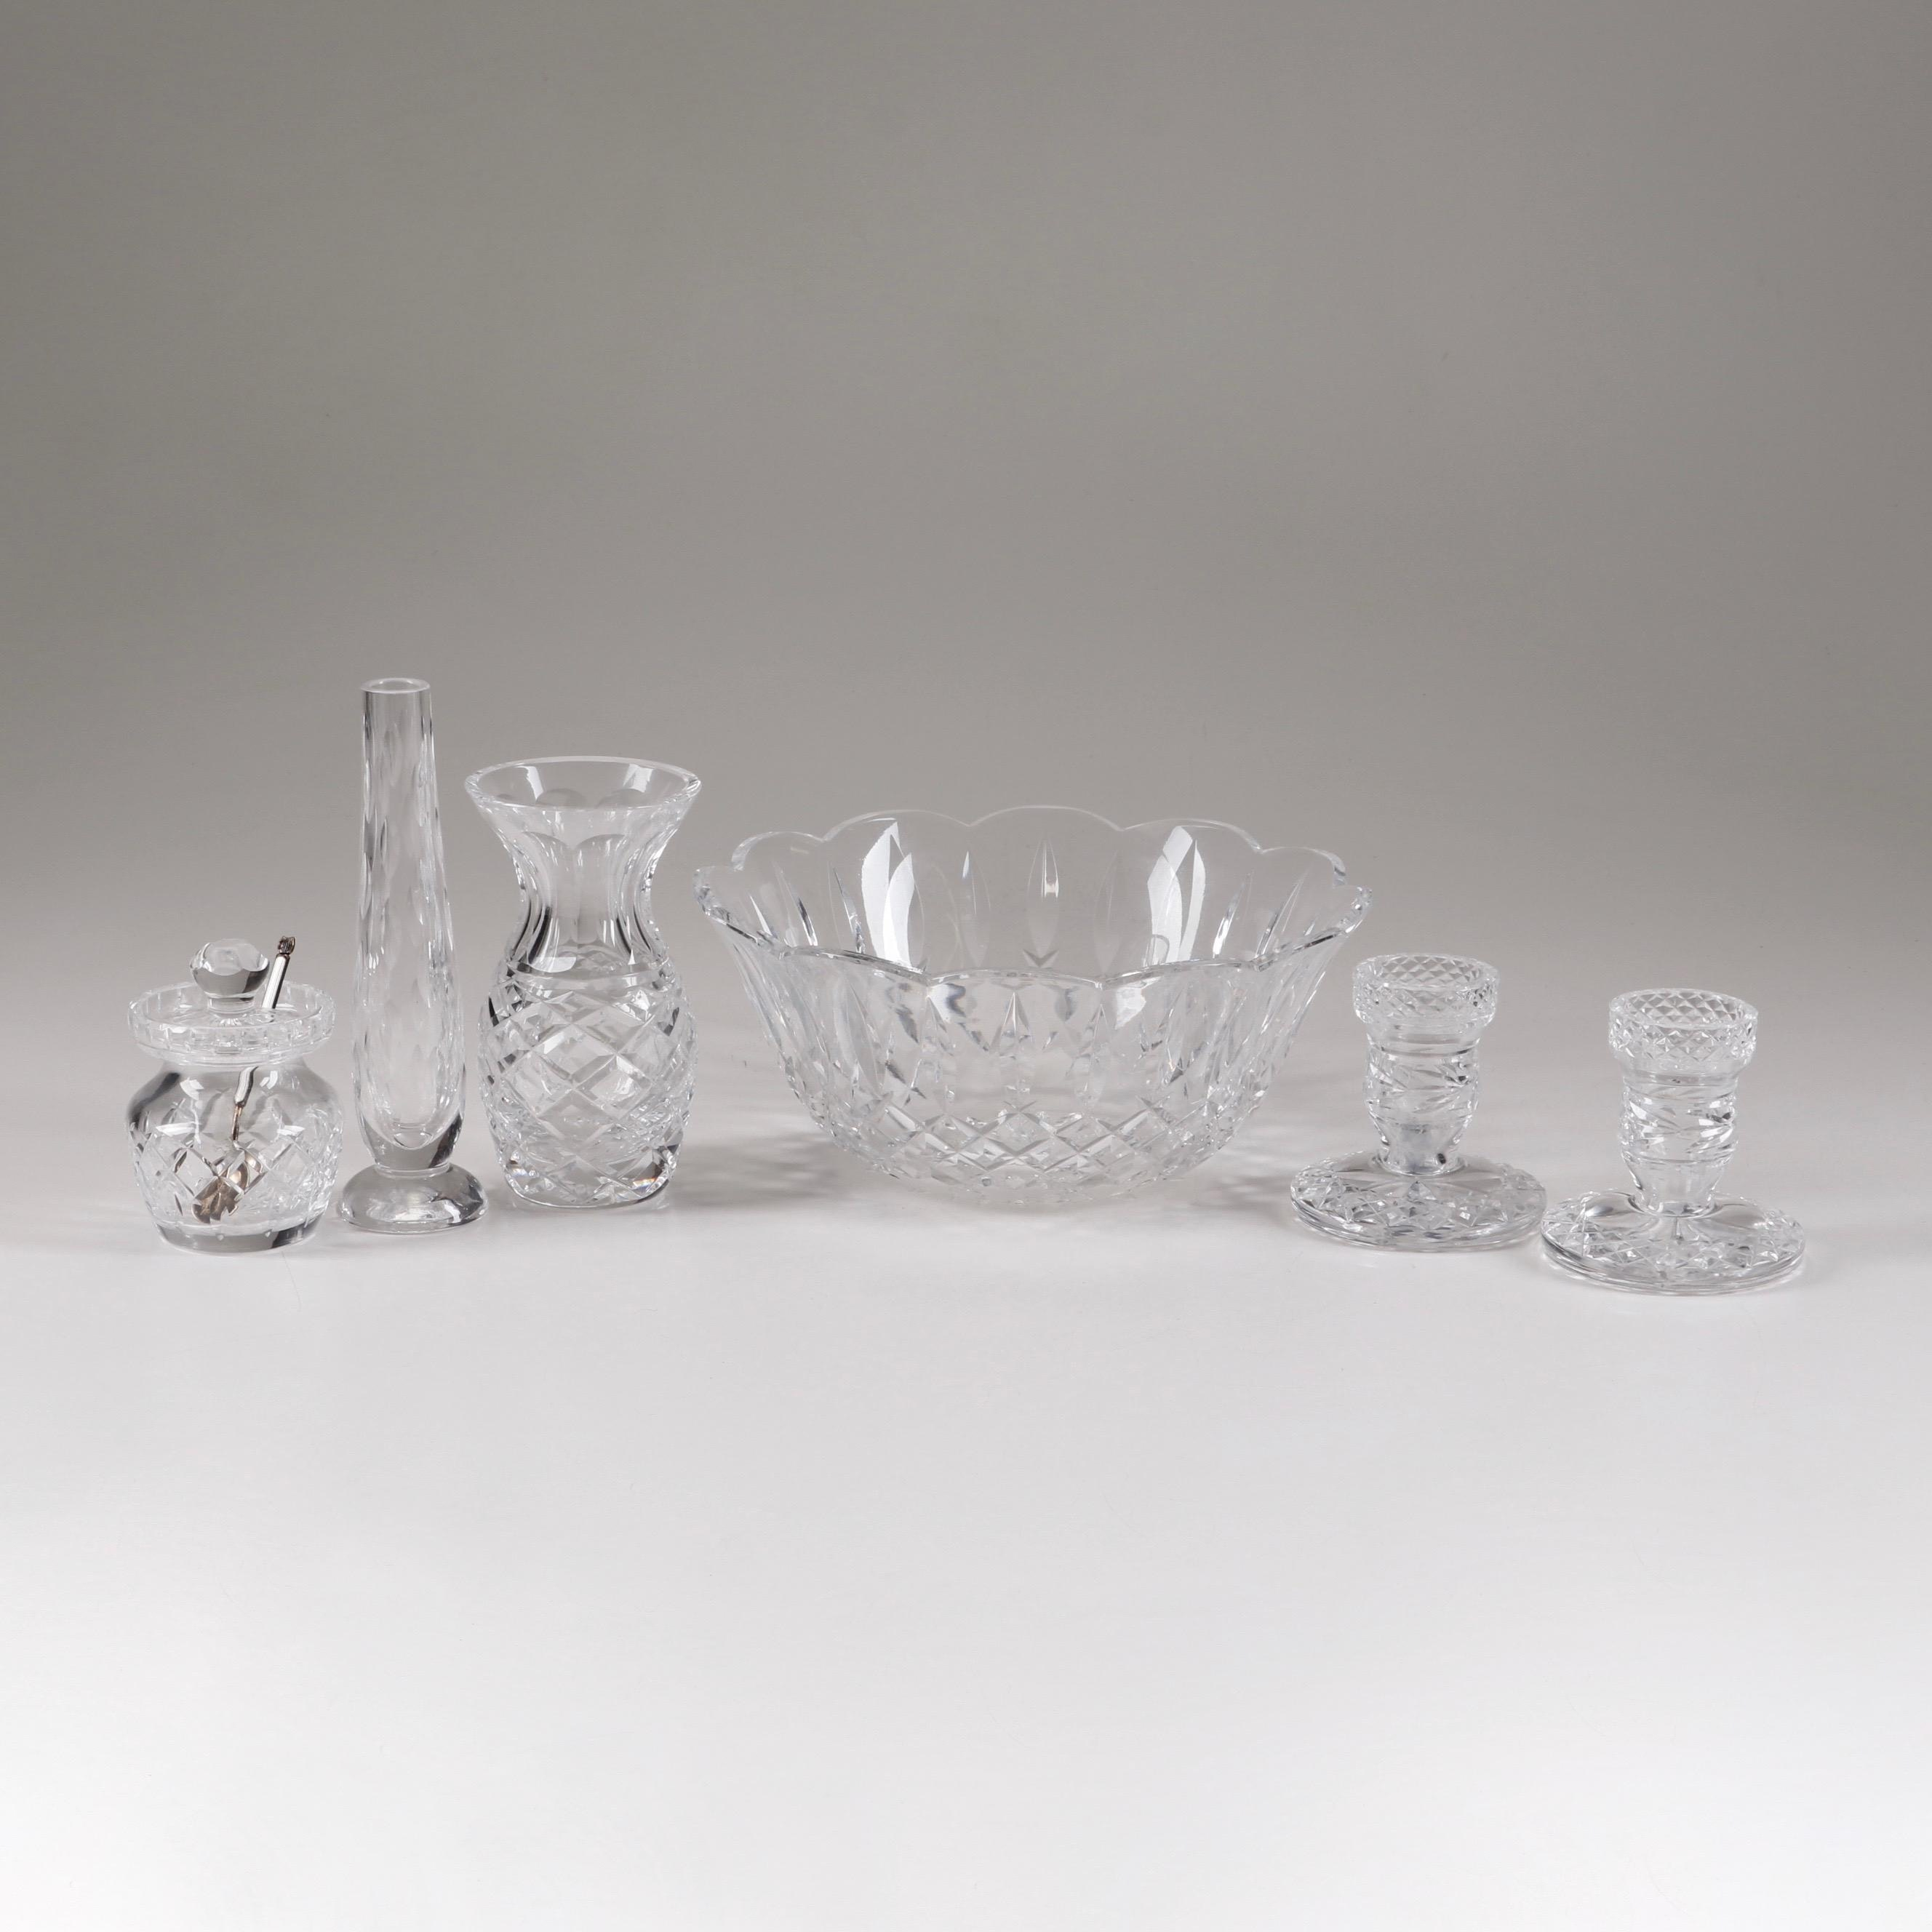 Waterford Crystal Vases, Candle Holders, Honey Jar and Other Tableware